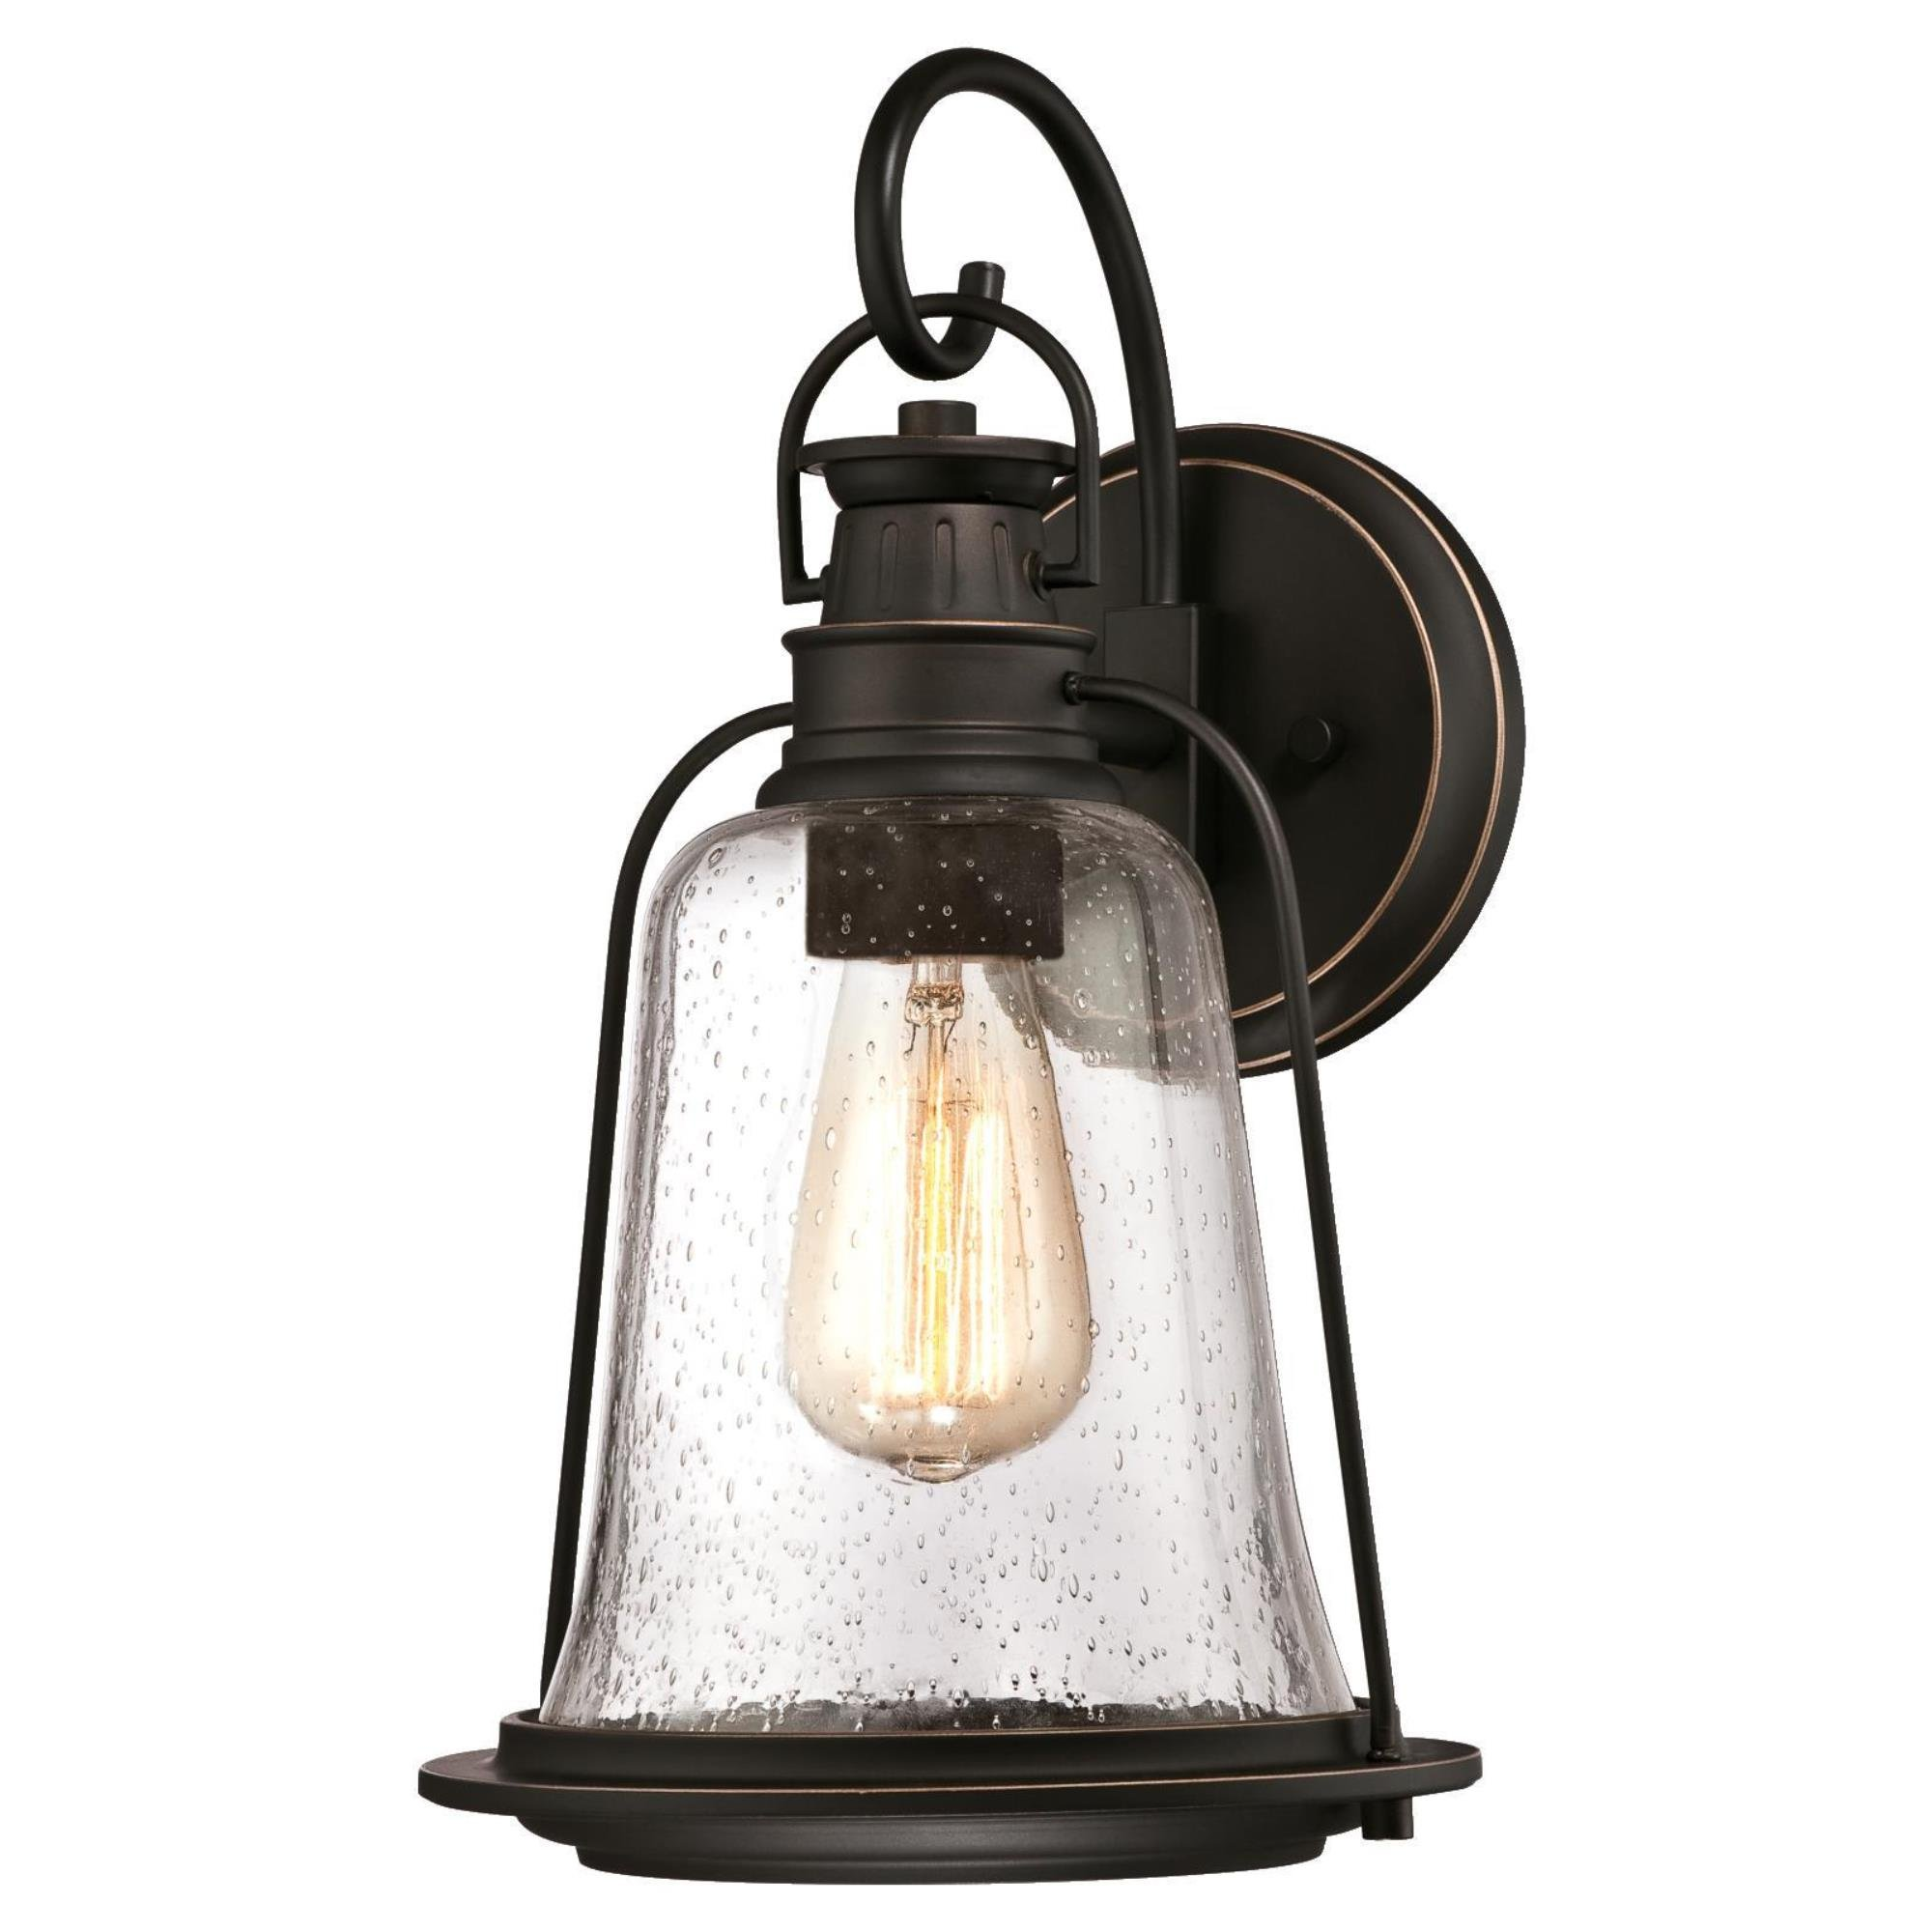 Westinghouse Lighting 6349100 Brynn One-Light Outdoor Wall Fixture, Oil Rubbed Bronze Finish with Highlights and Clear Seeded Glass by Westinghouse Lighting